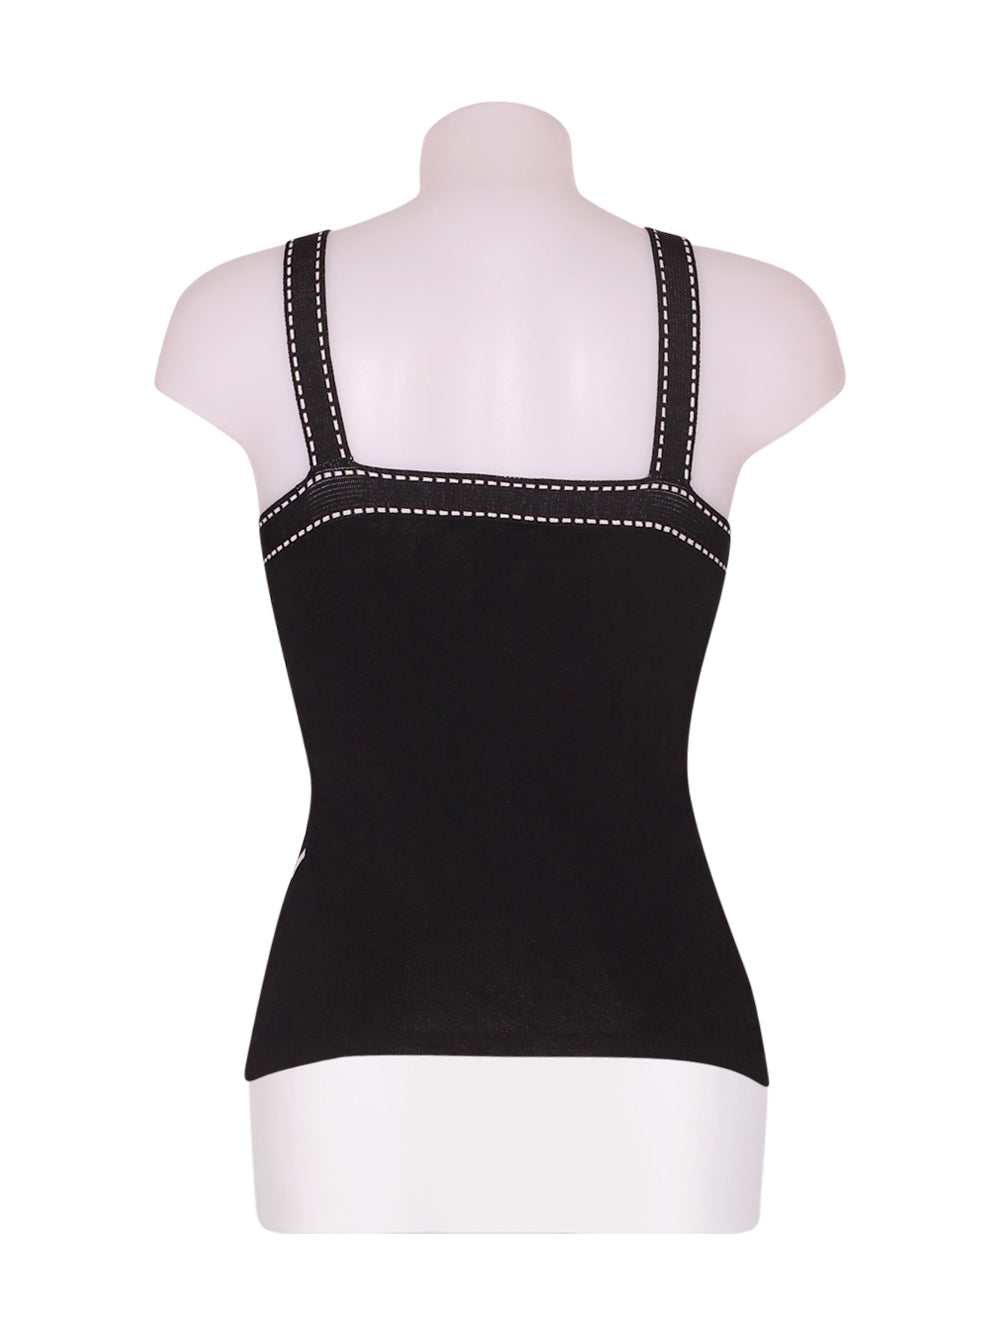 Back photo of Preloved rafael Black Woman's sleeveless top - size 8/S